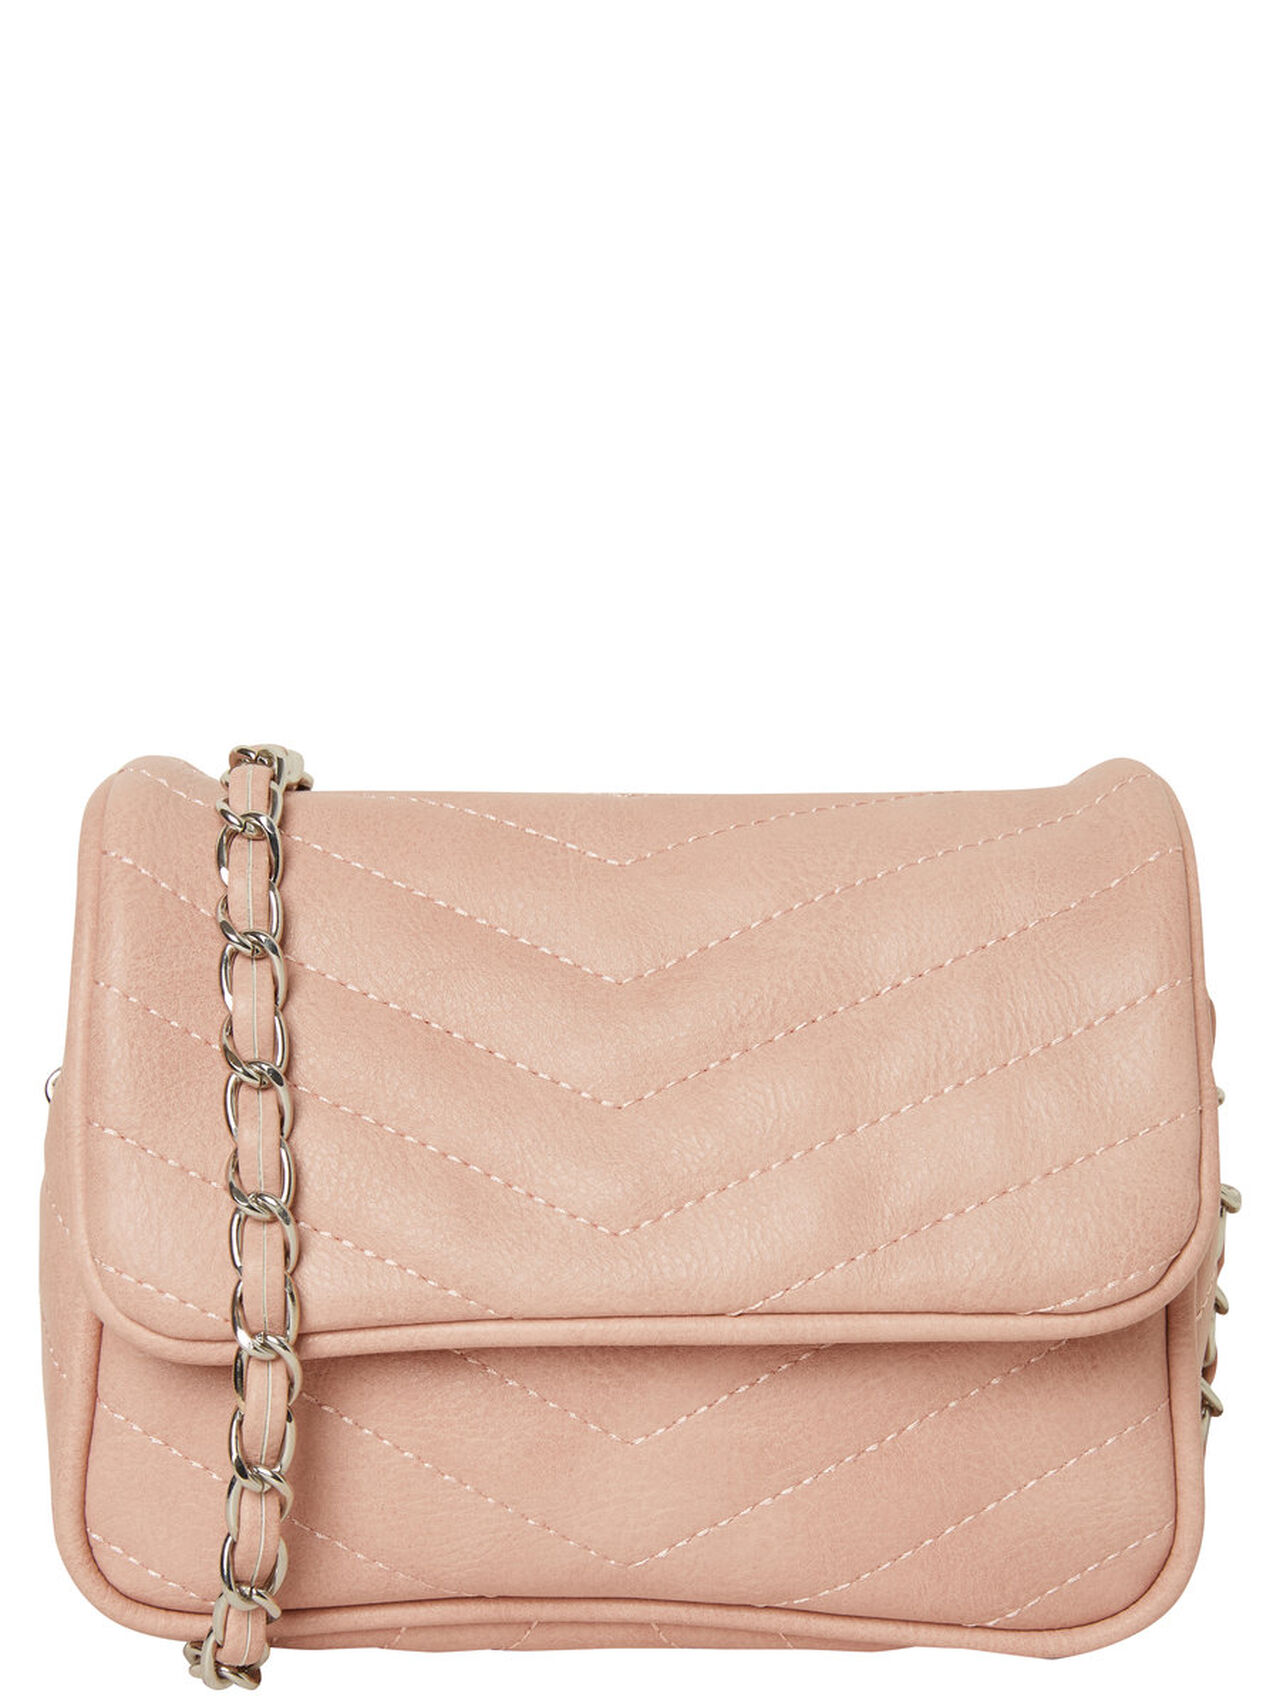 VERO MODA Small Crossbody Bag Women Pink